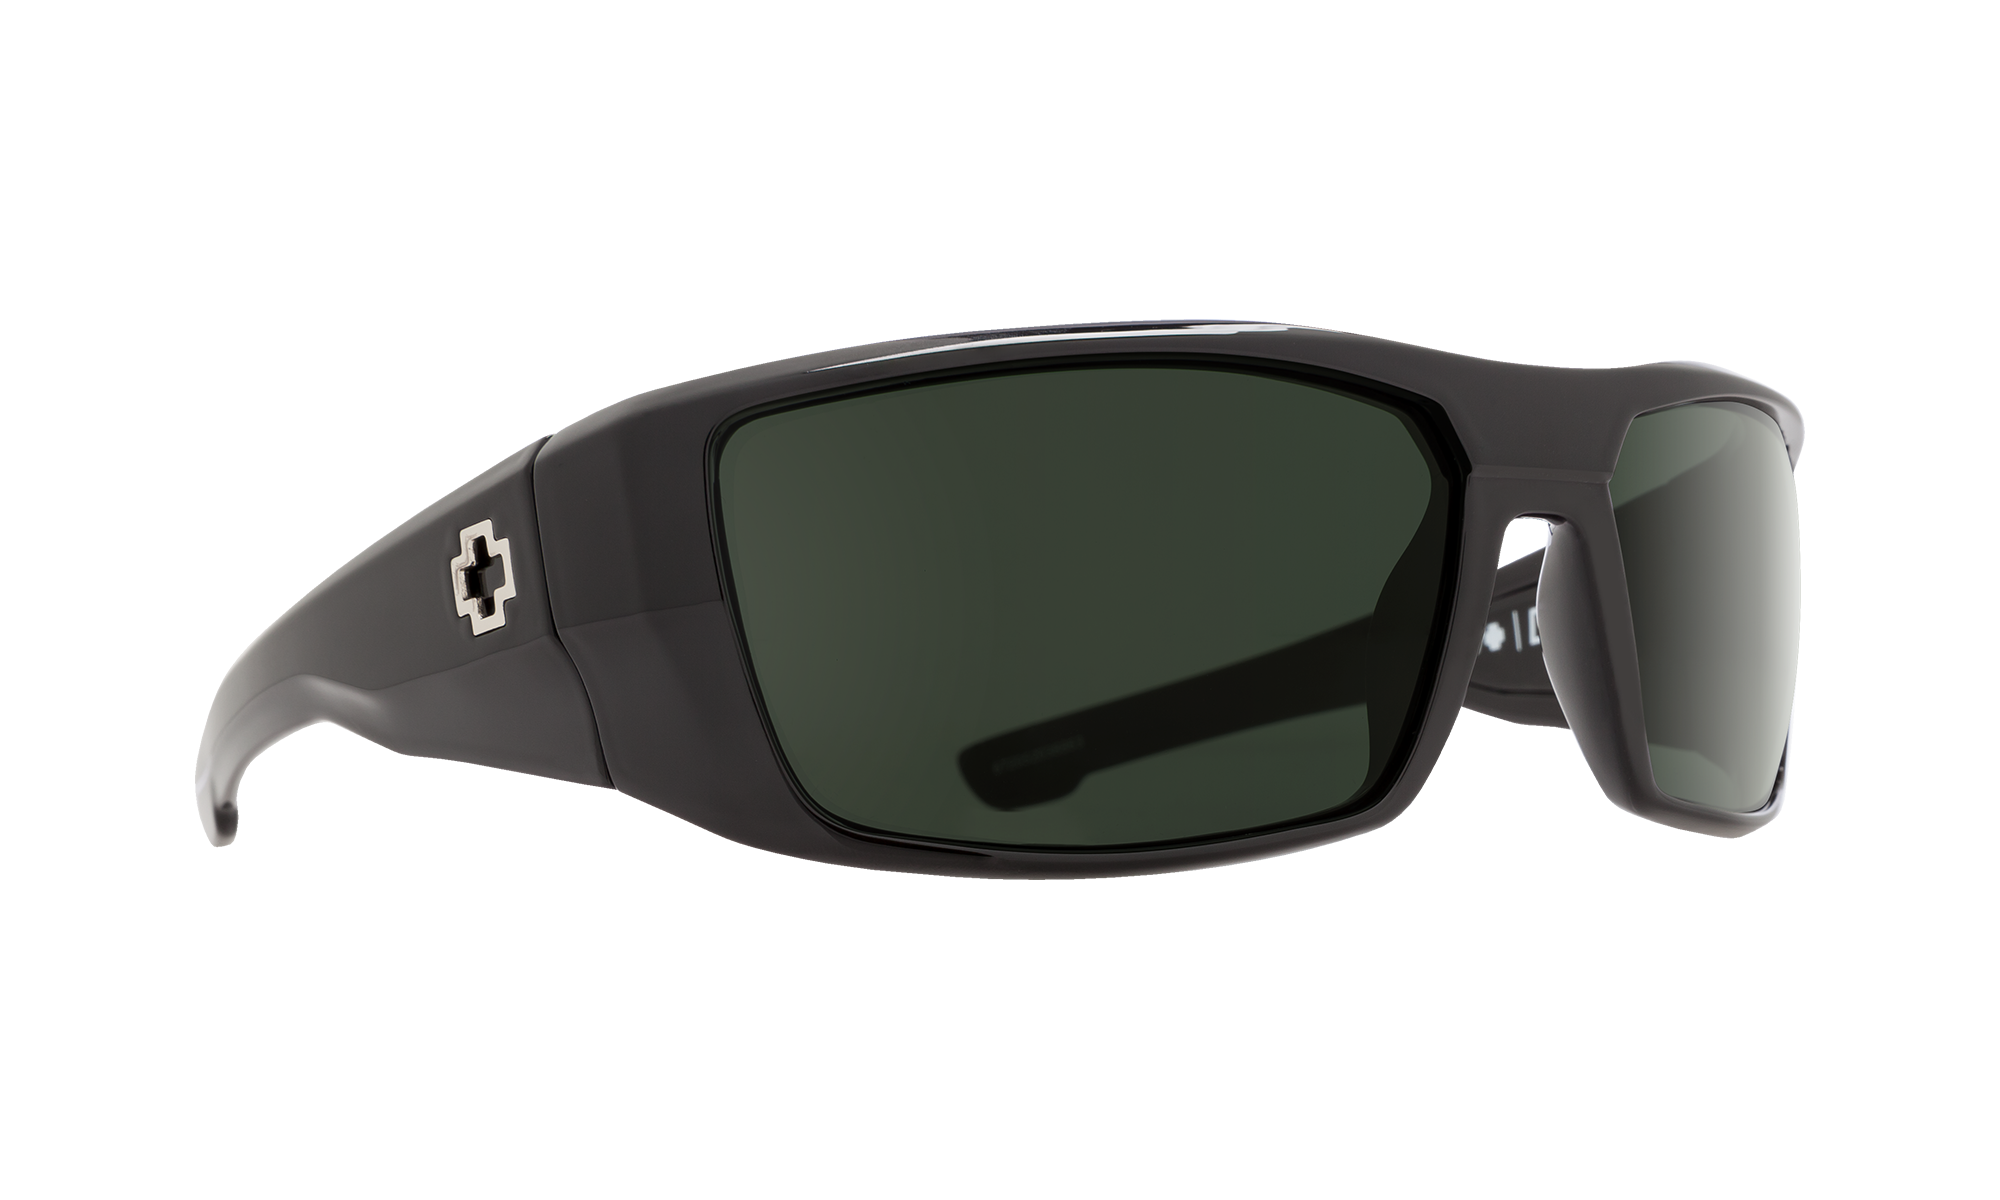 bbfd342ae187 Dirk Sunglasses - Polarized & ANSI Available | SPY Optic